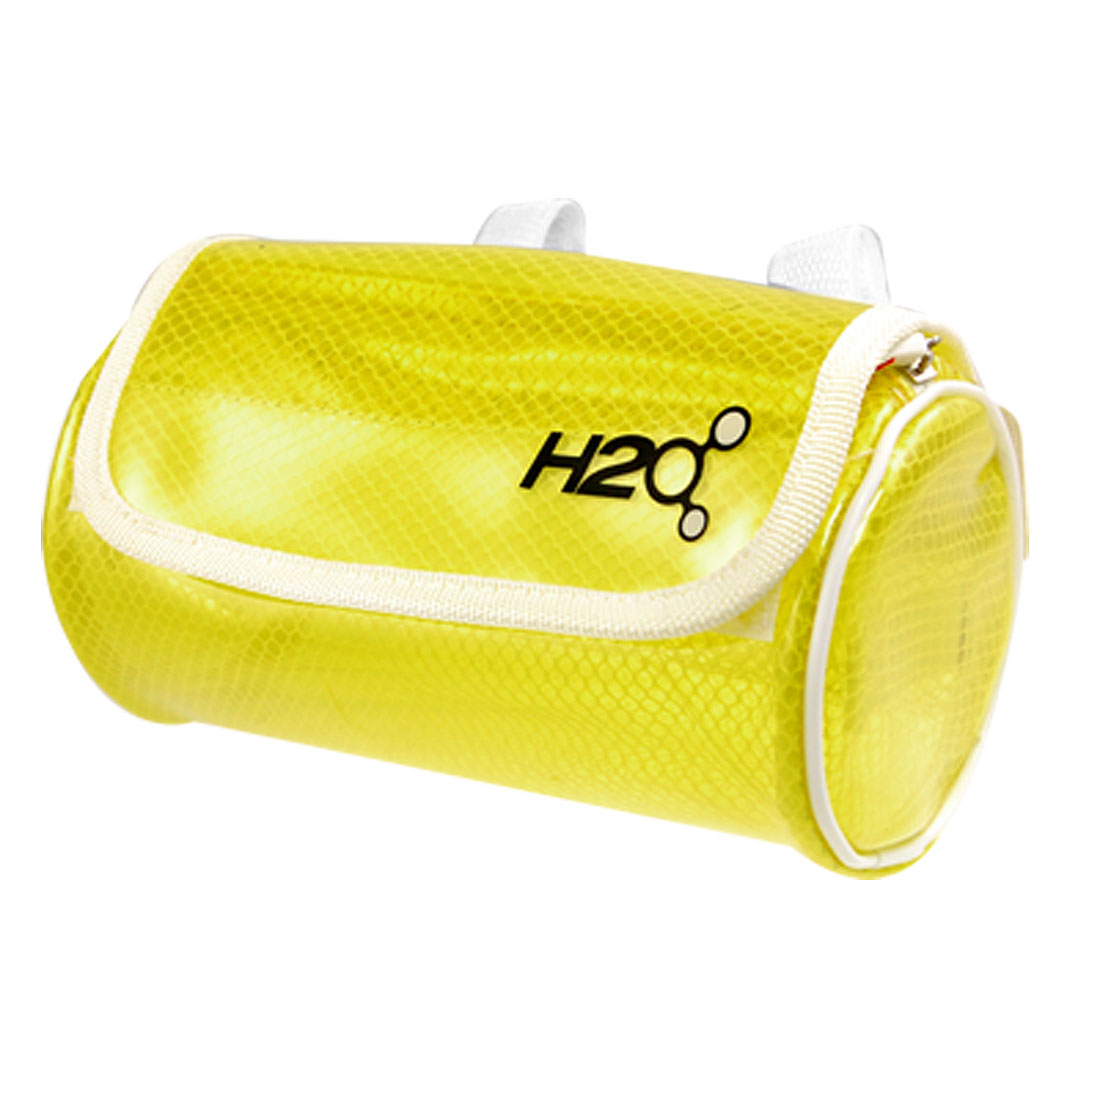 Soft Plastic Clear Yellow Front Handlebar Bag for Bicycle